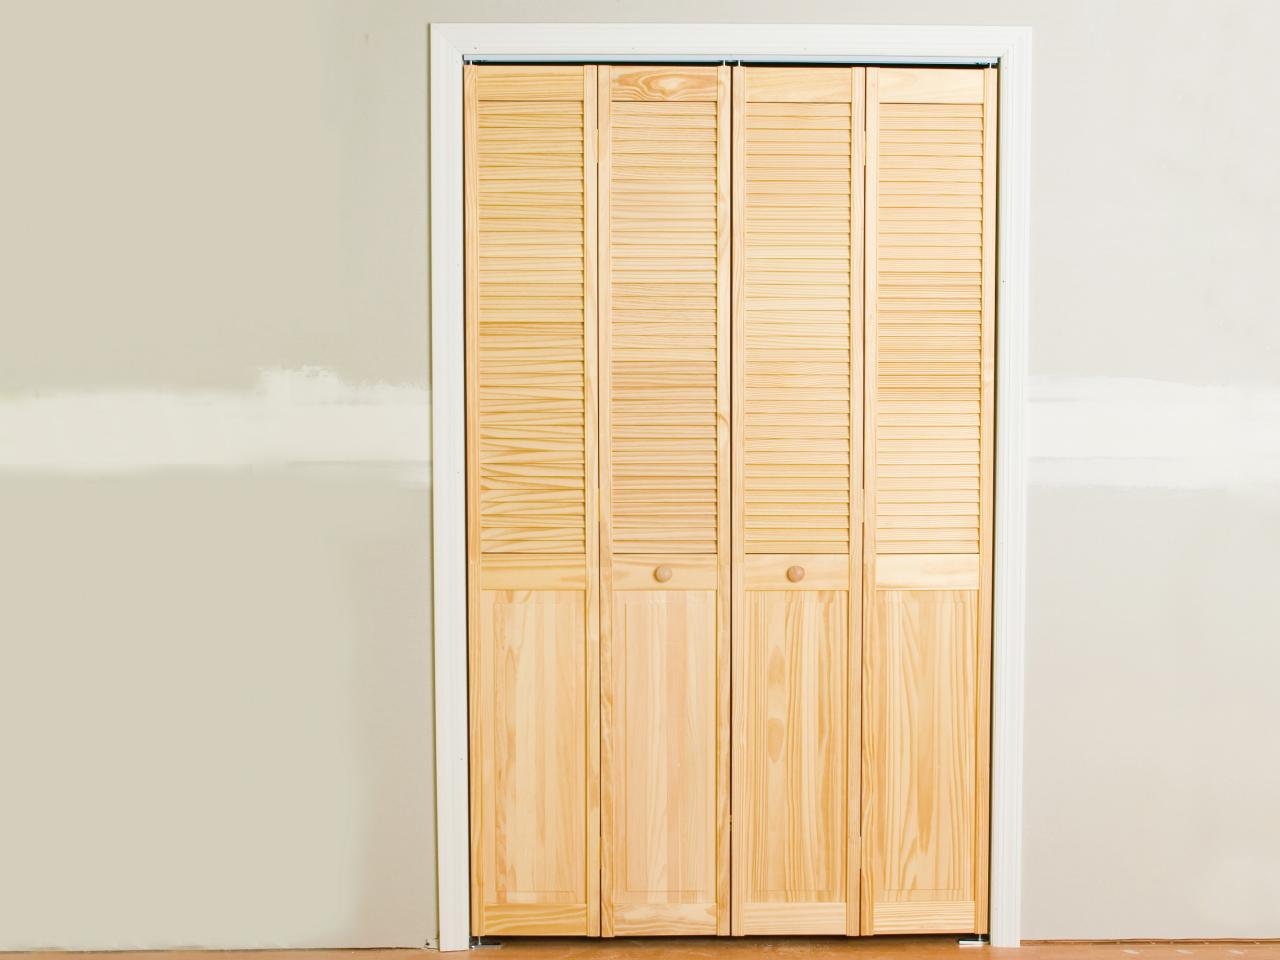 Bi fold closet door finished bi fold door is space saver JFVZEEA